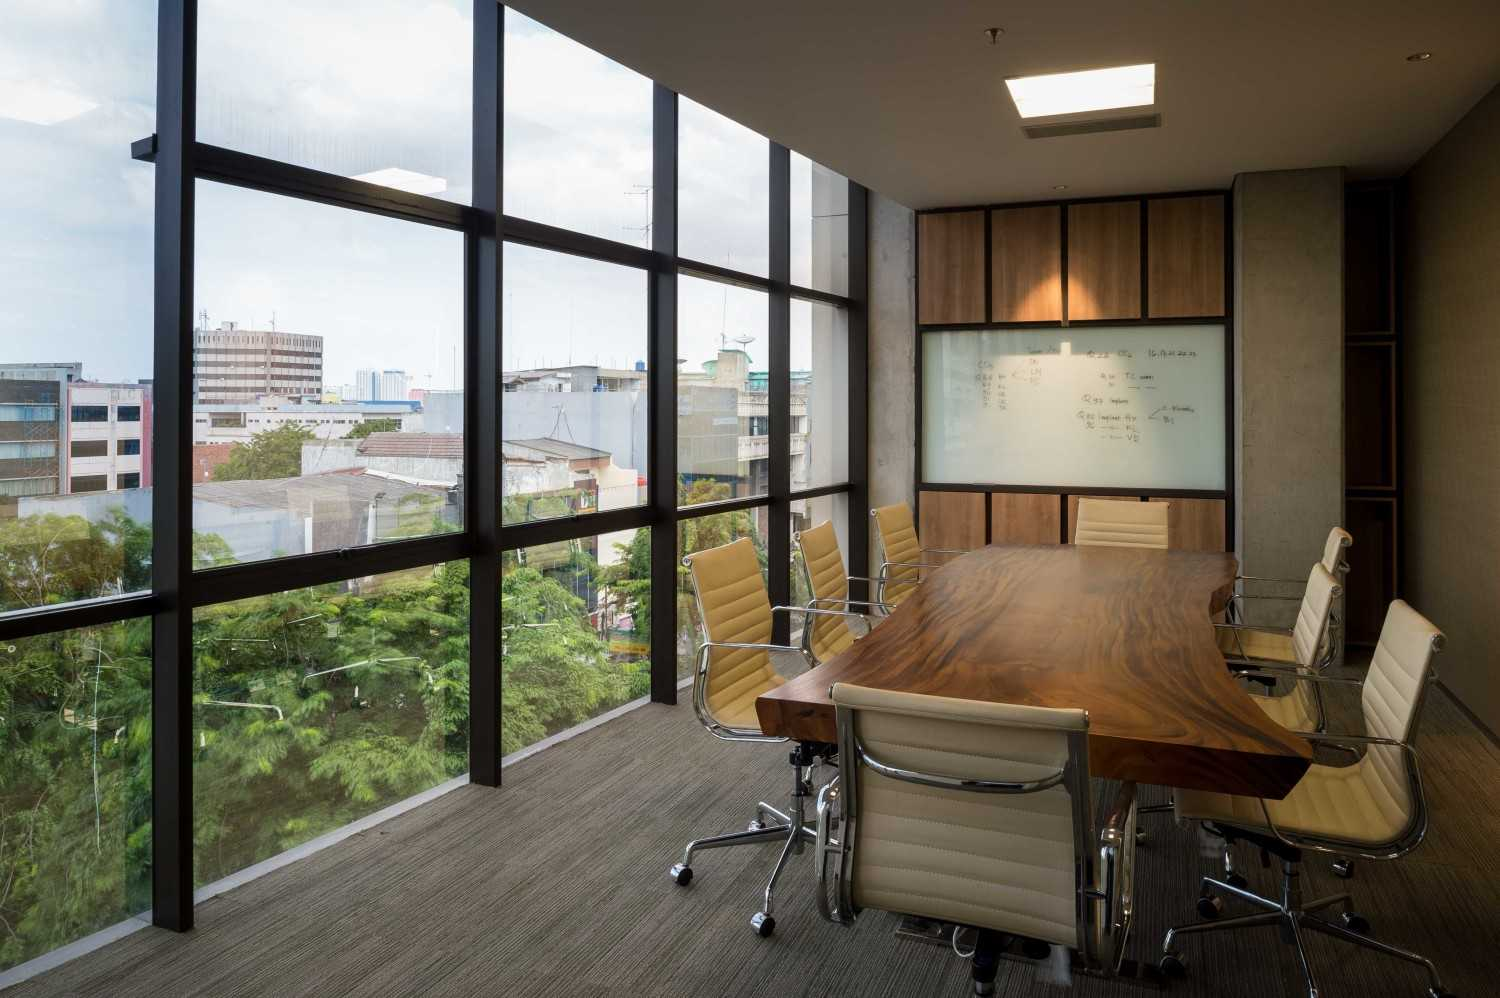 Foto inspirasi ide desain ruang meeting Galileo meeting room oleh hmparchitects di Arsitag